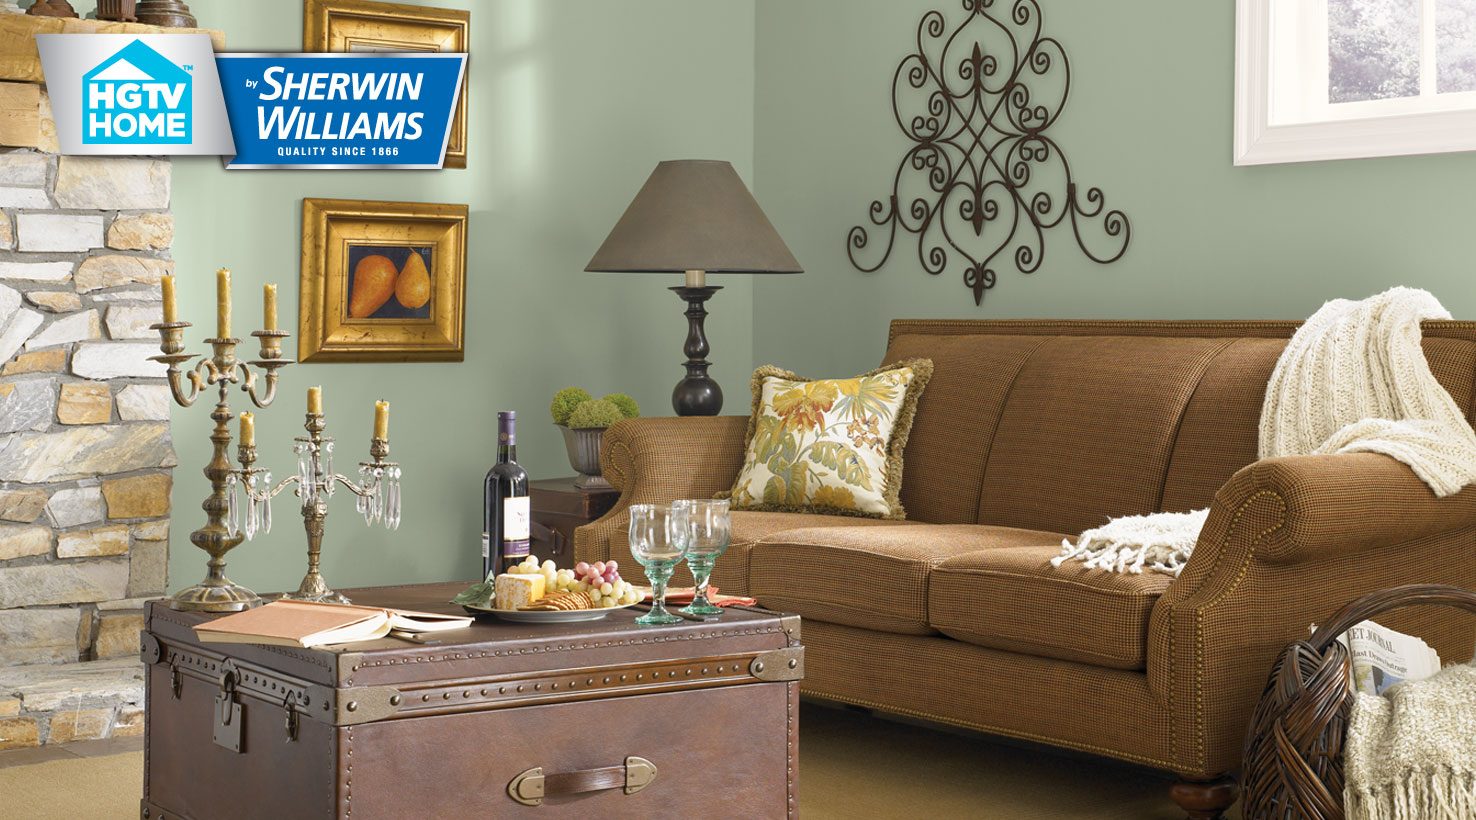 Sherwin Williams Exterior Decor Interior Rustic Refined Wallpaper Collection  Hgtv Home™Sherwinwilliams